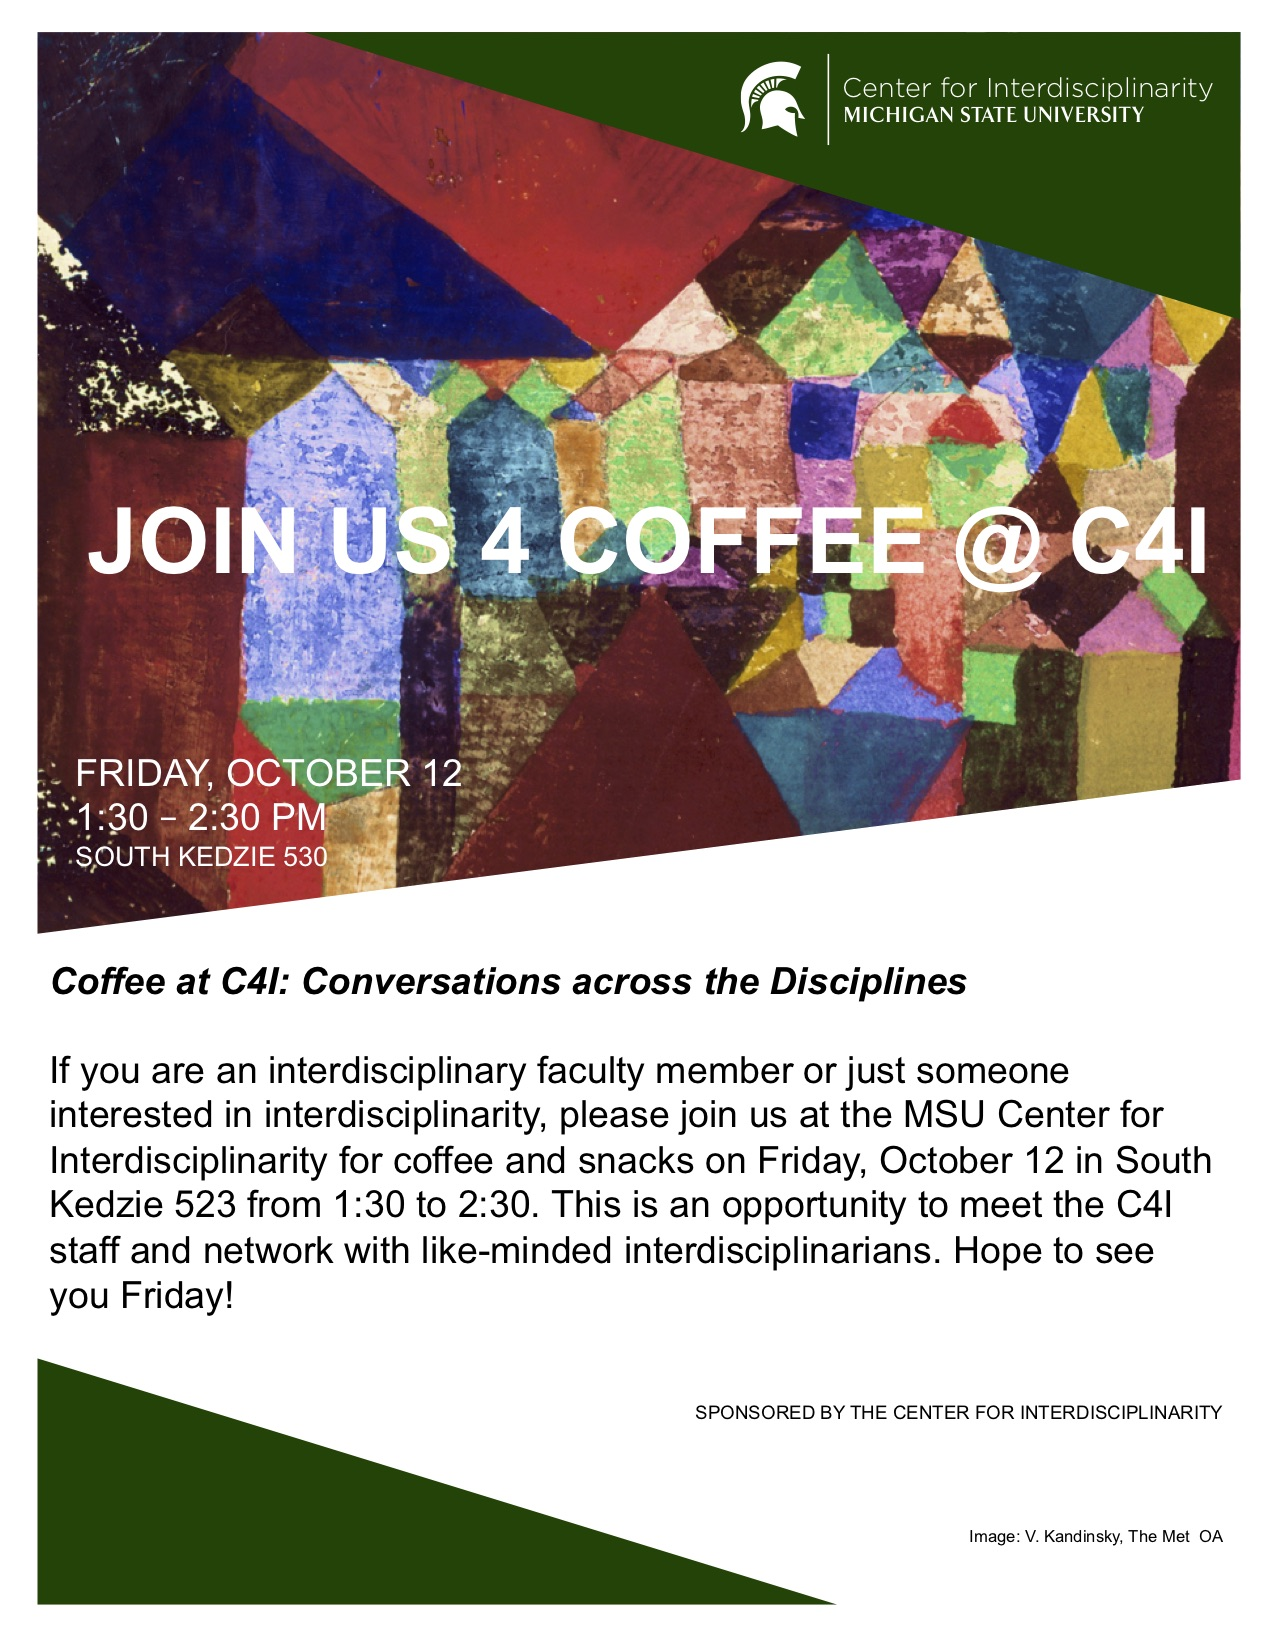 Coffee at C4I @ South Kedzie room 523 | East Lansing | Michigan | United States